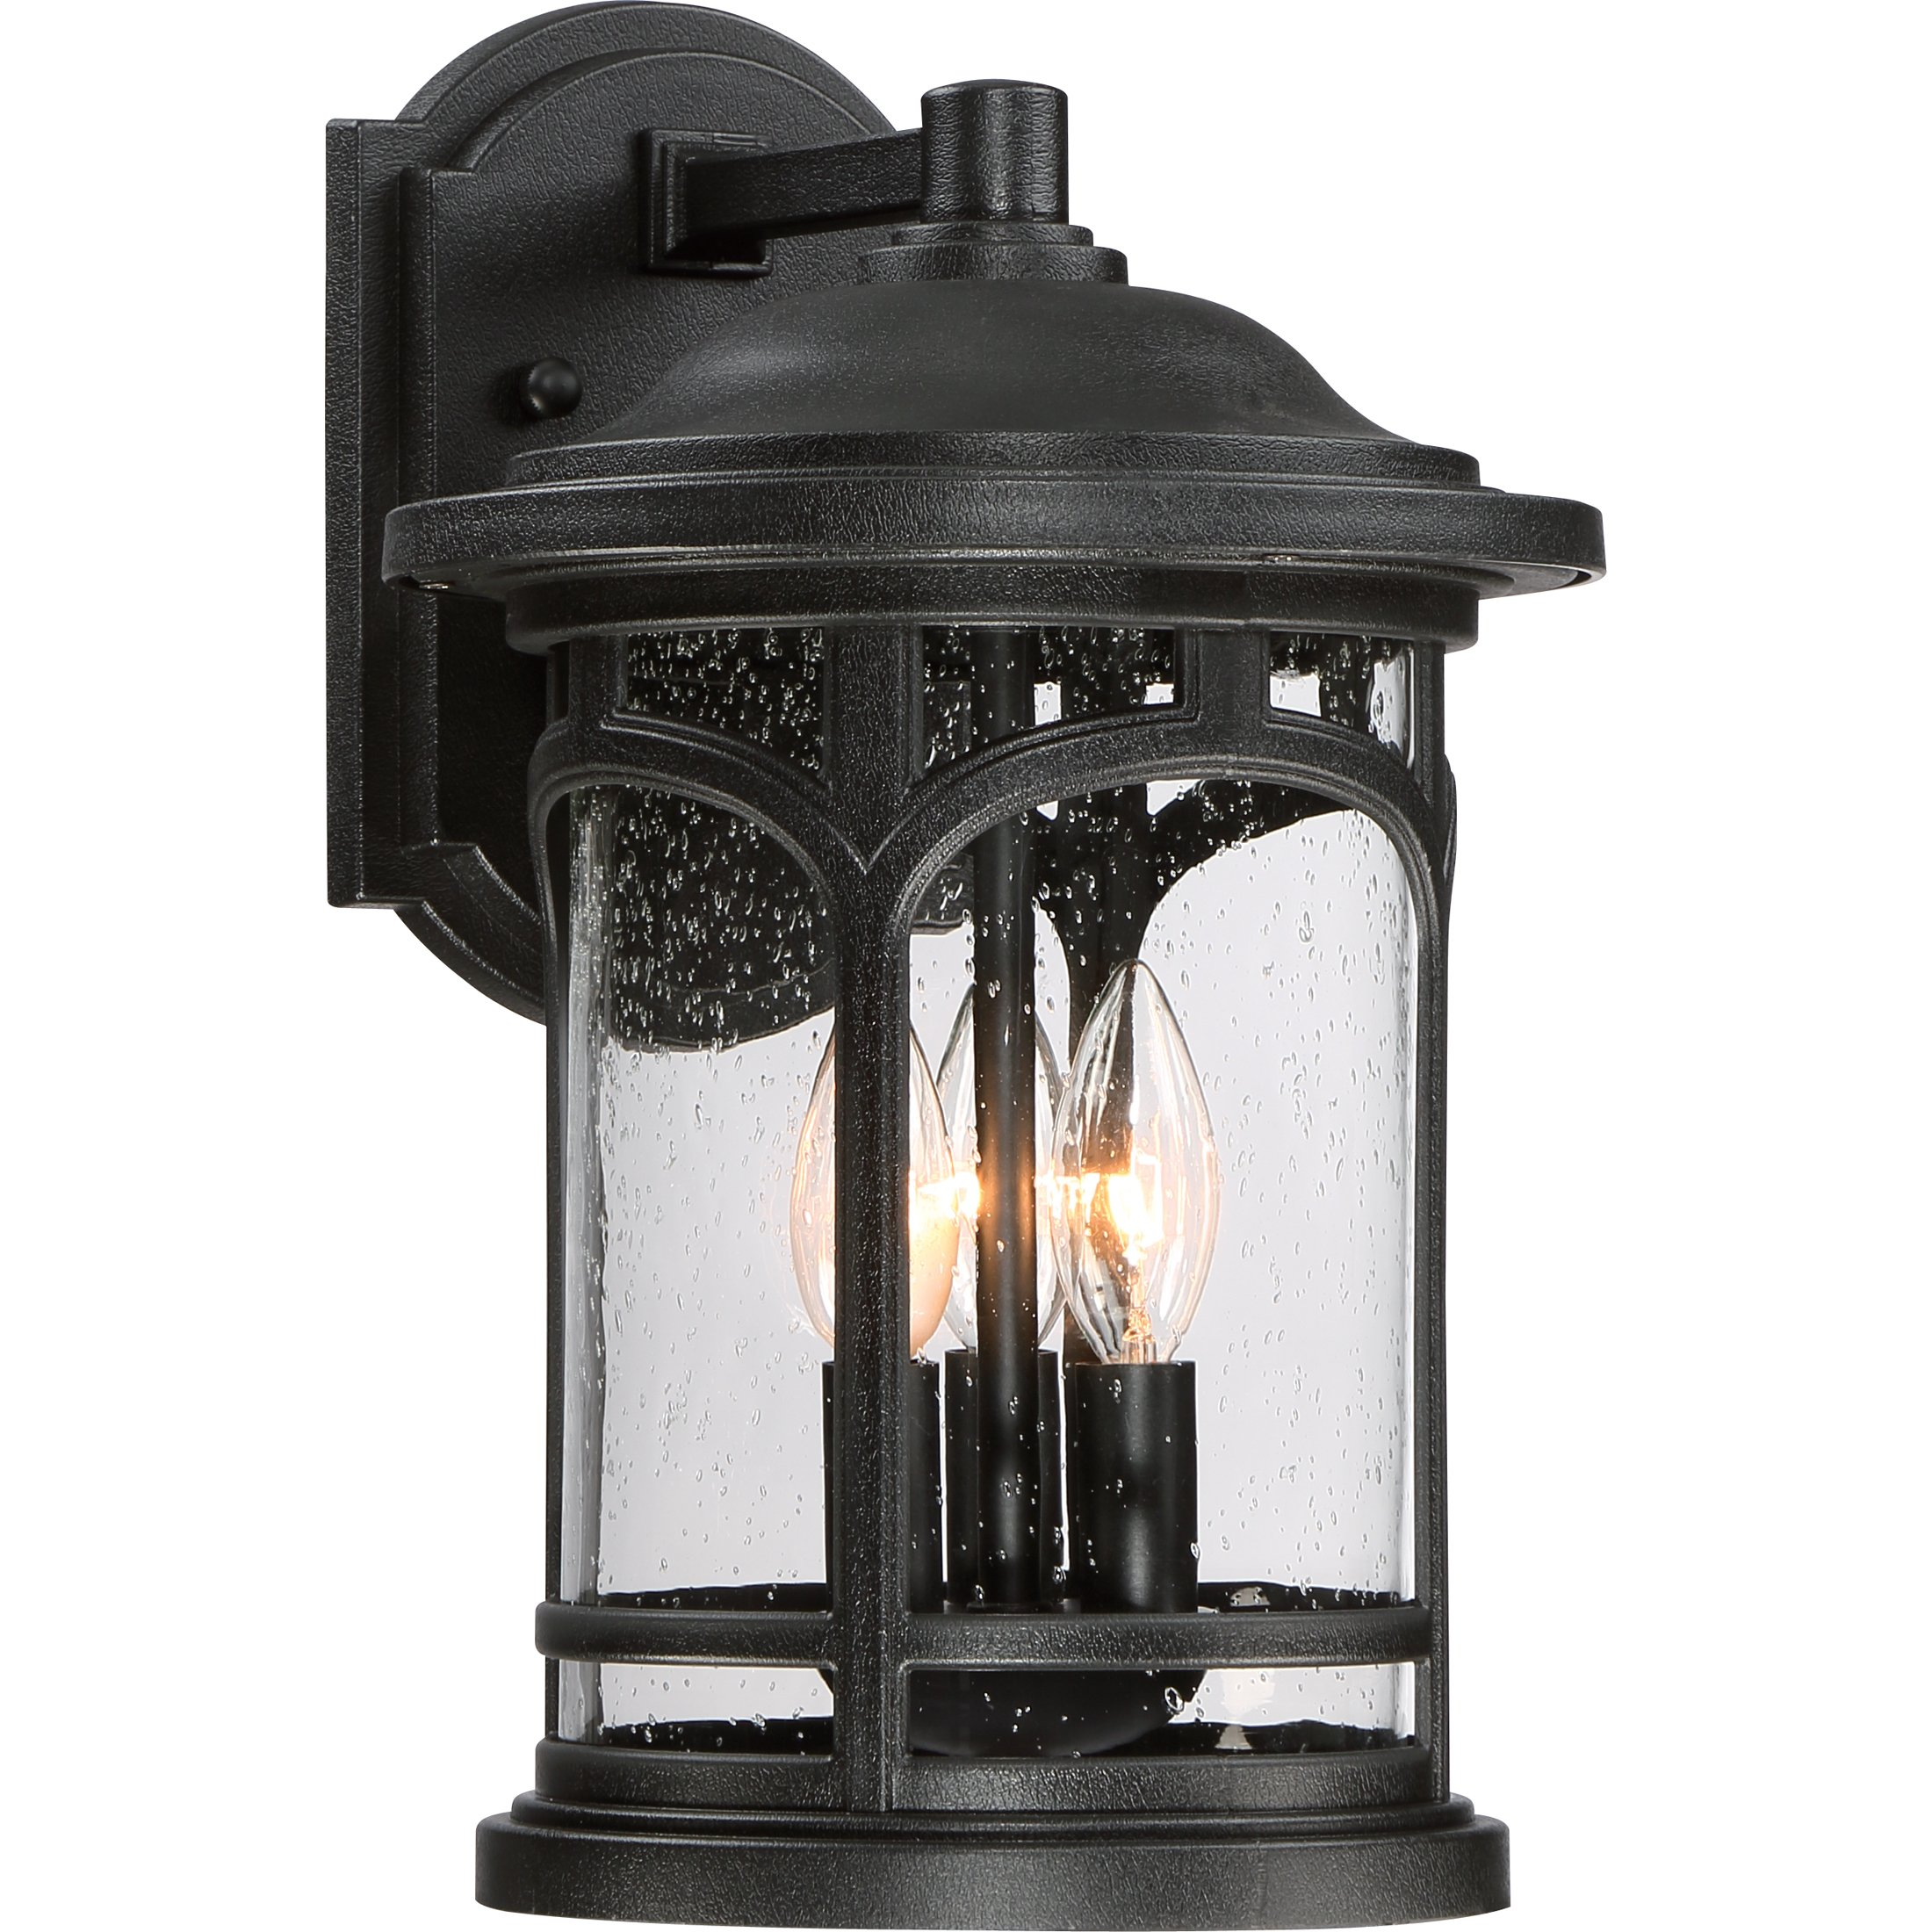 MBH8409K Three Light Wall Marblehead Outdoor Lantern in Mystic Black by Quoizel